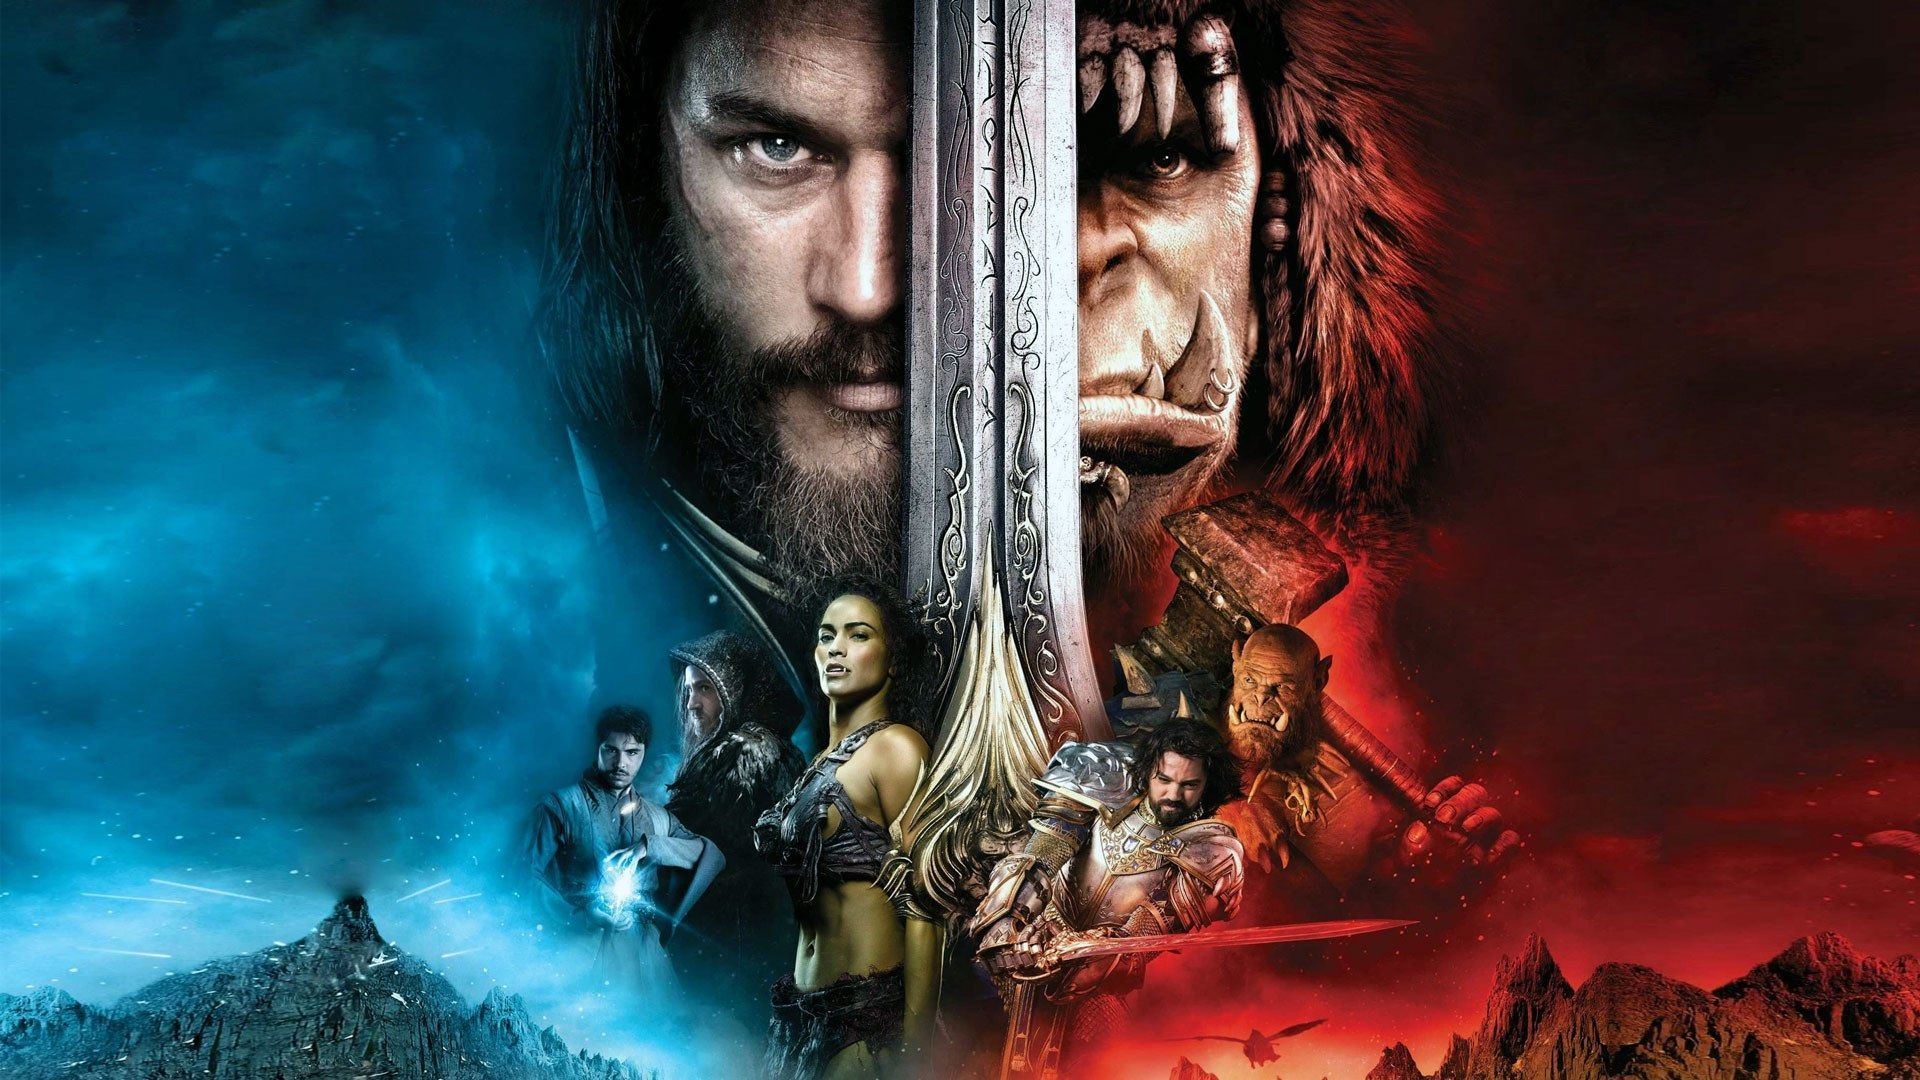 1920x1080 Warcraft Full Hd Wallpapers New Movie Wallpapers Warcraft Movie Warcraft Movie Characters